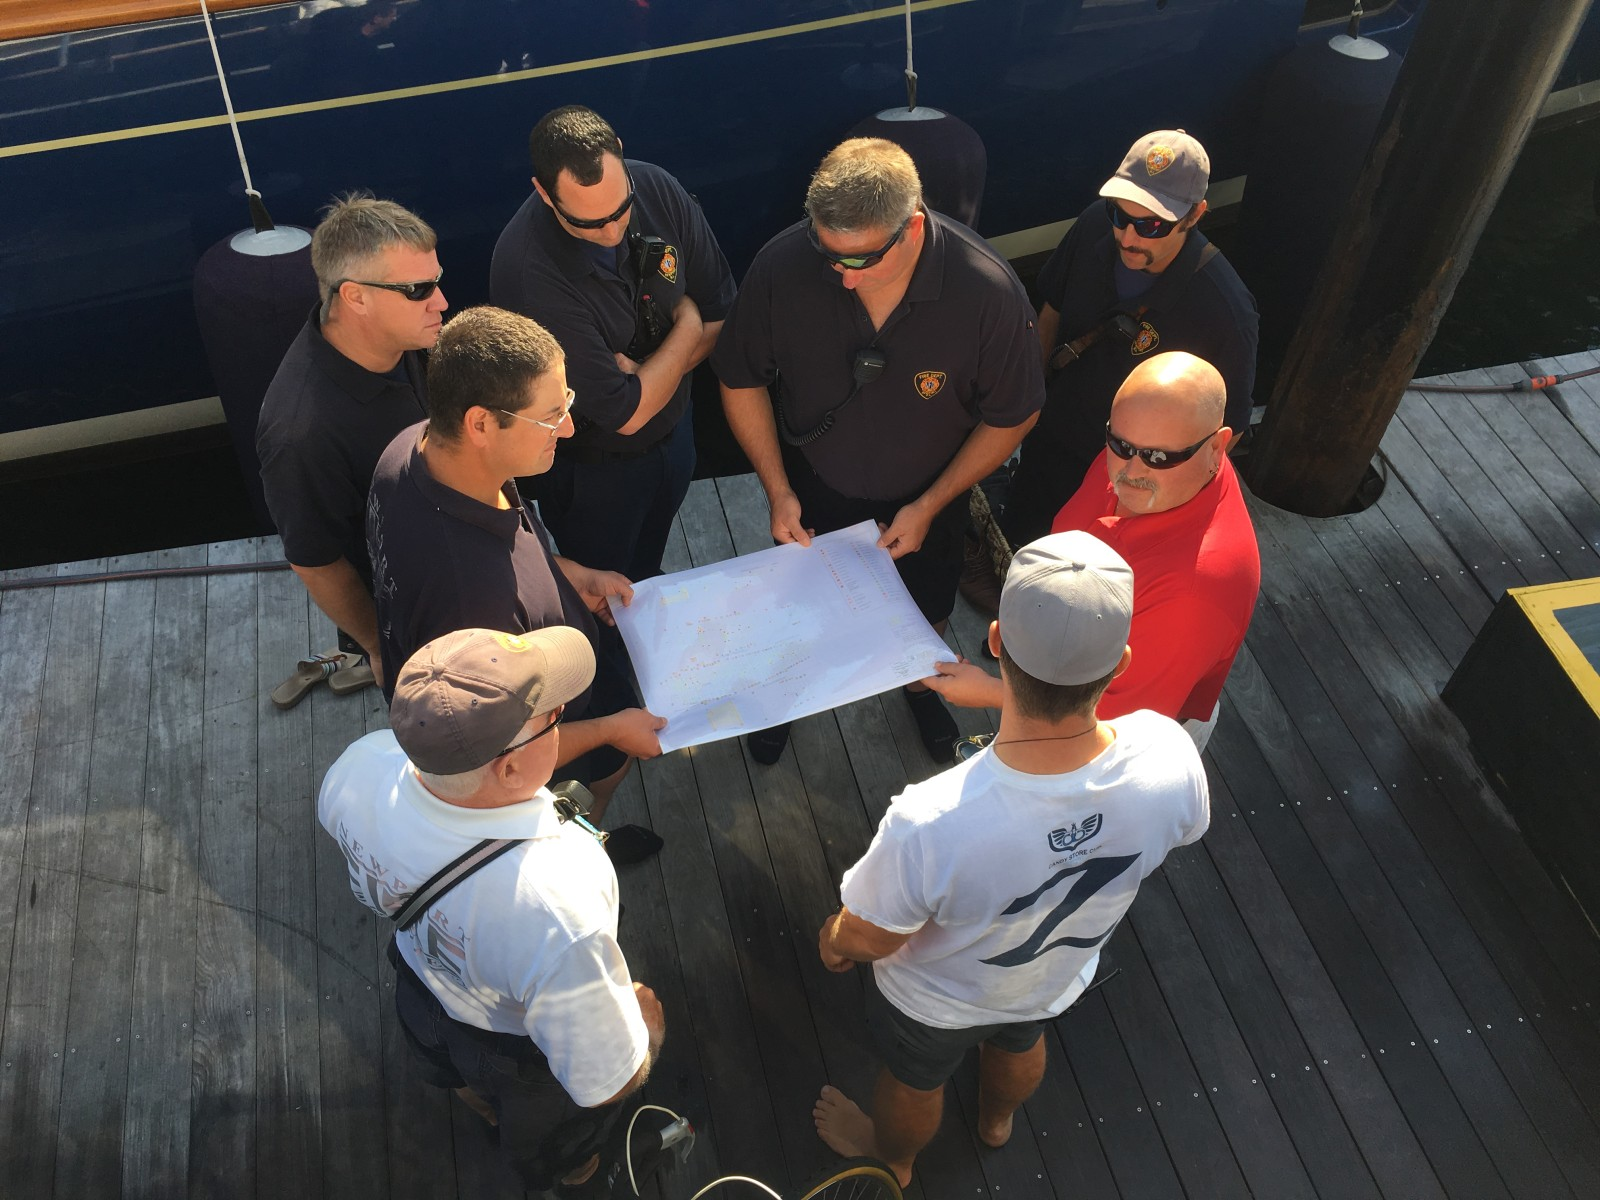 Newport Rhode Island firefighters examine S/Y Zenji's fire plan. PHOTOS FROM AIG PRIVATE CLIENT GROUP